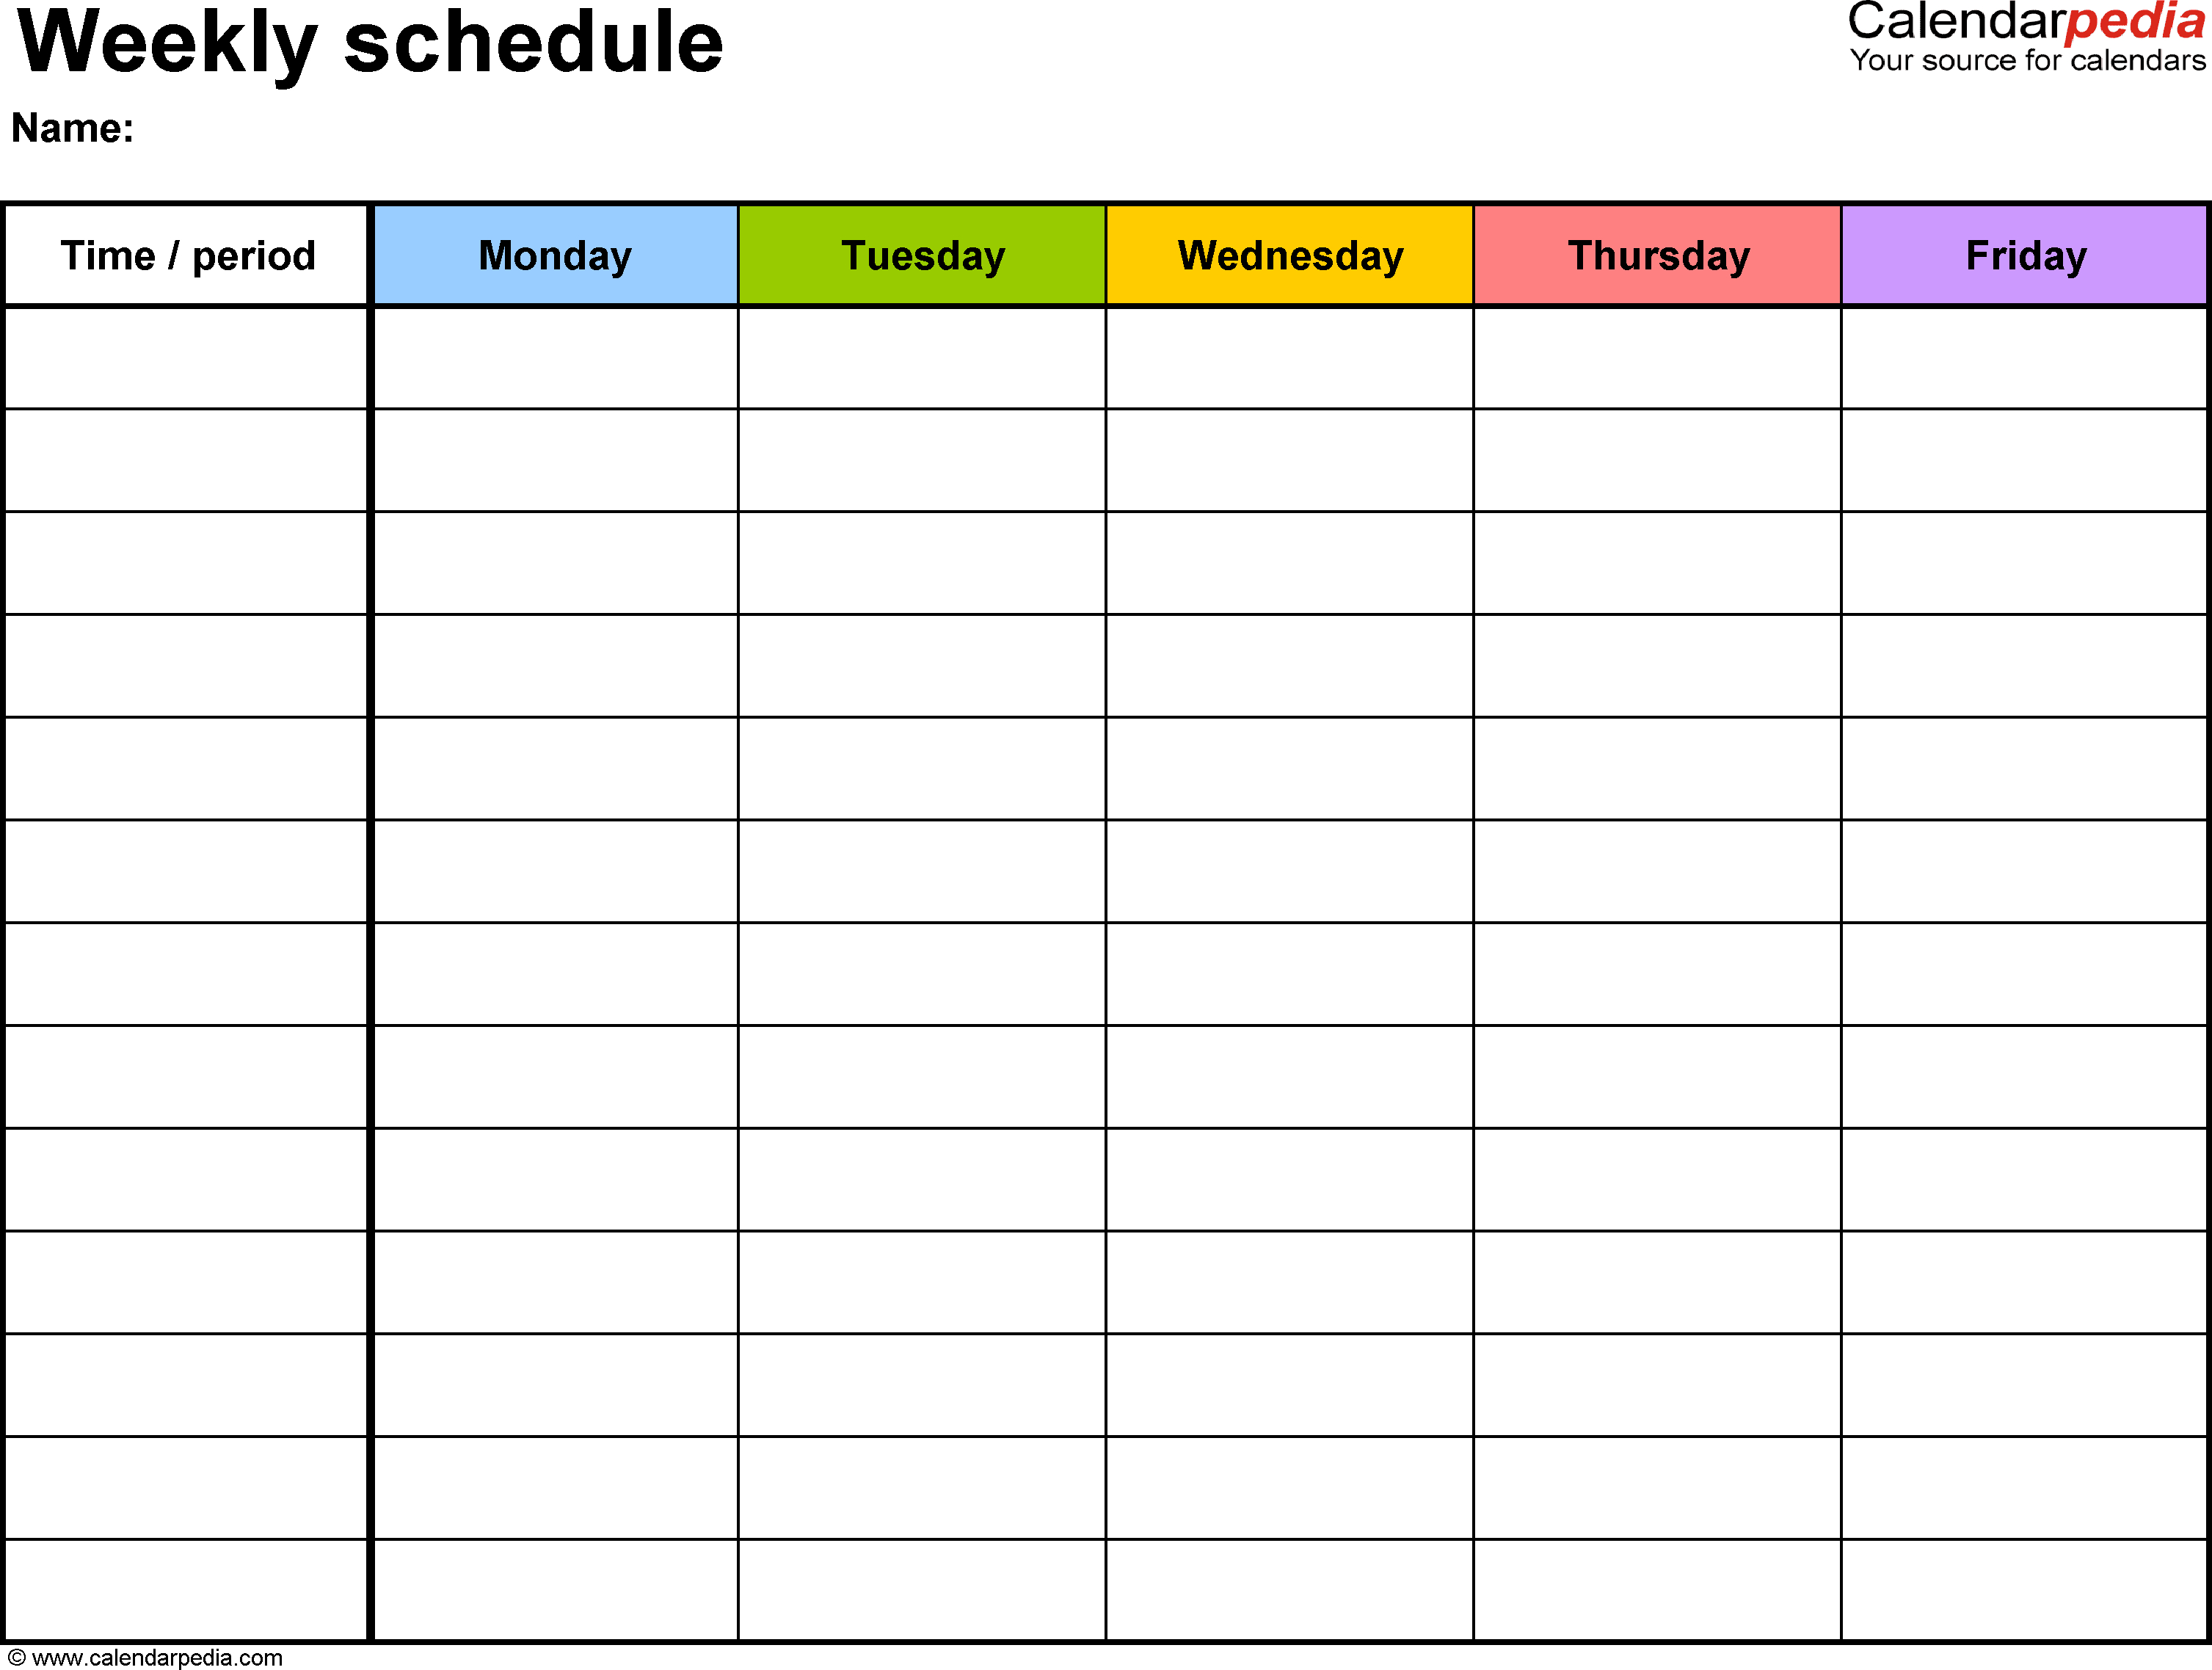 Free Weekly Schedule Templates For Excel - 18 Templates within Page A Day Calendar Template